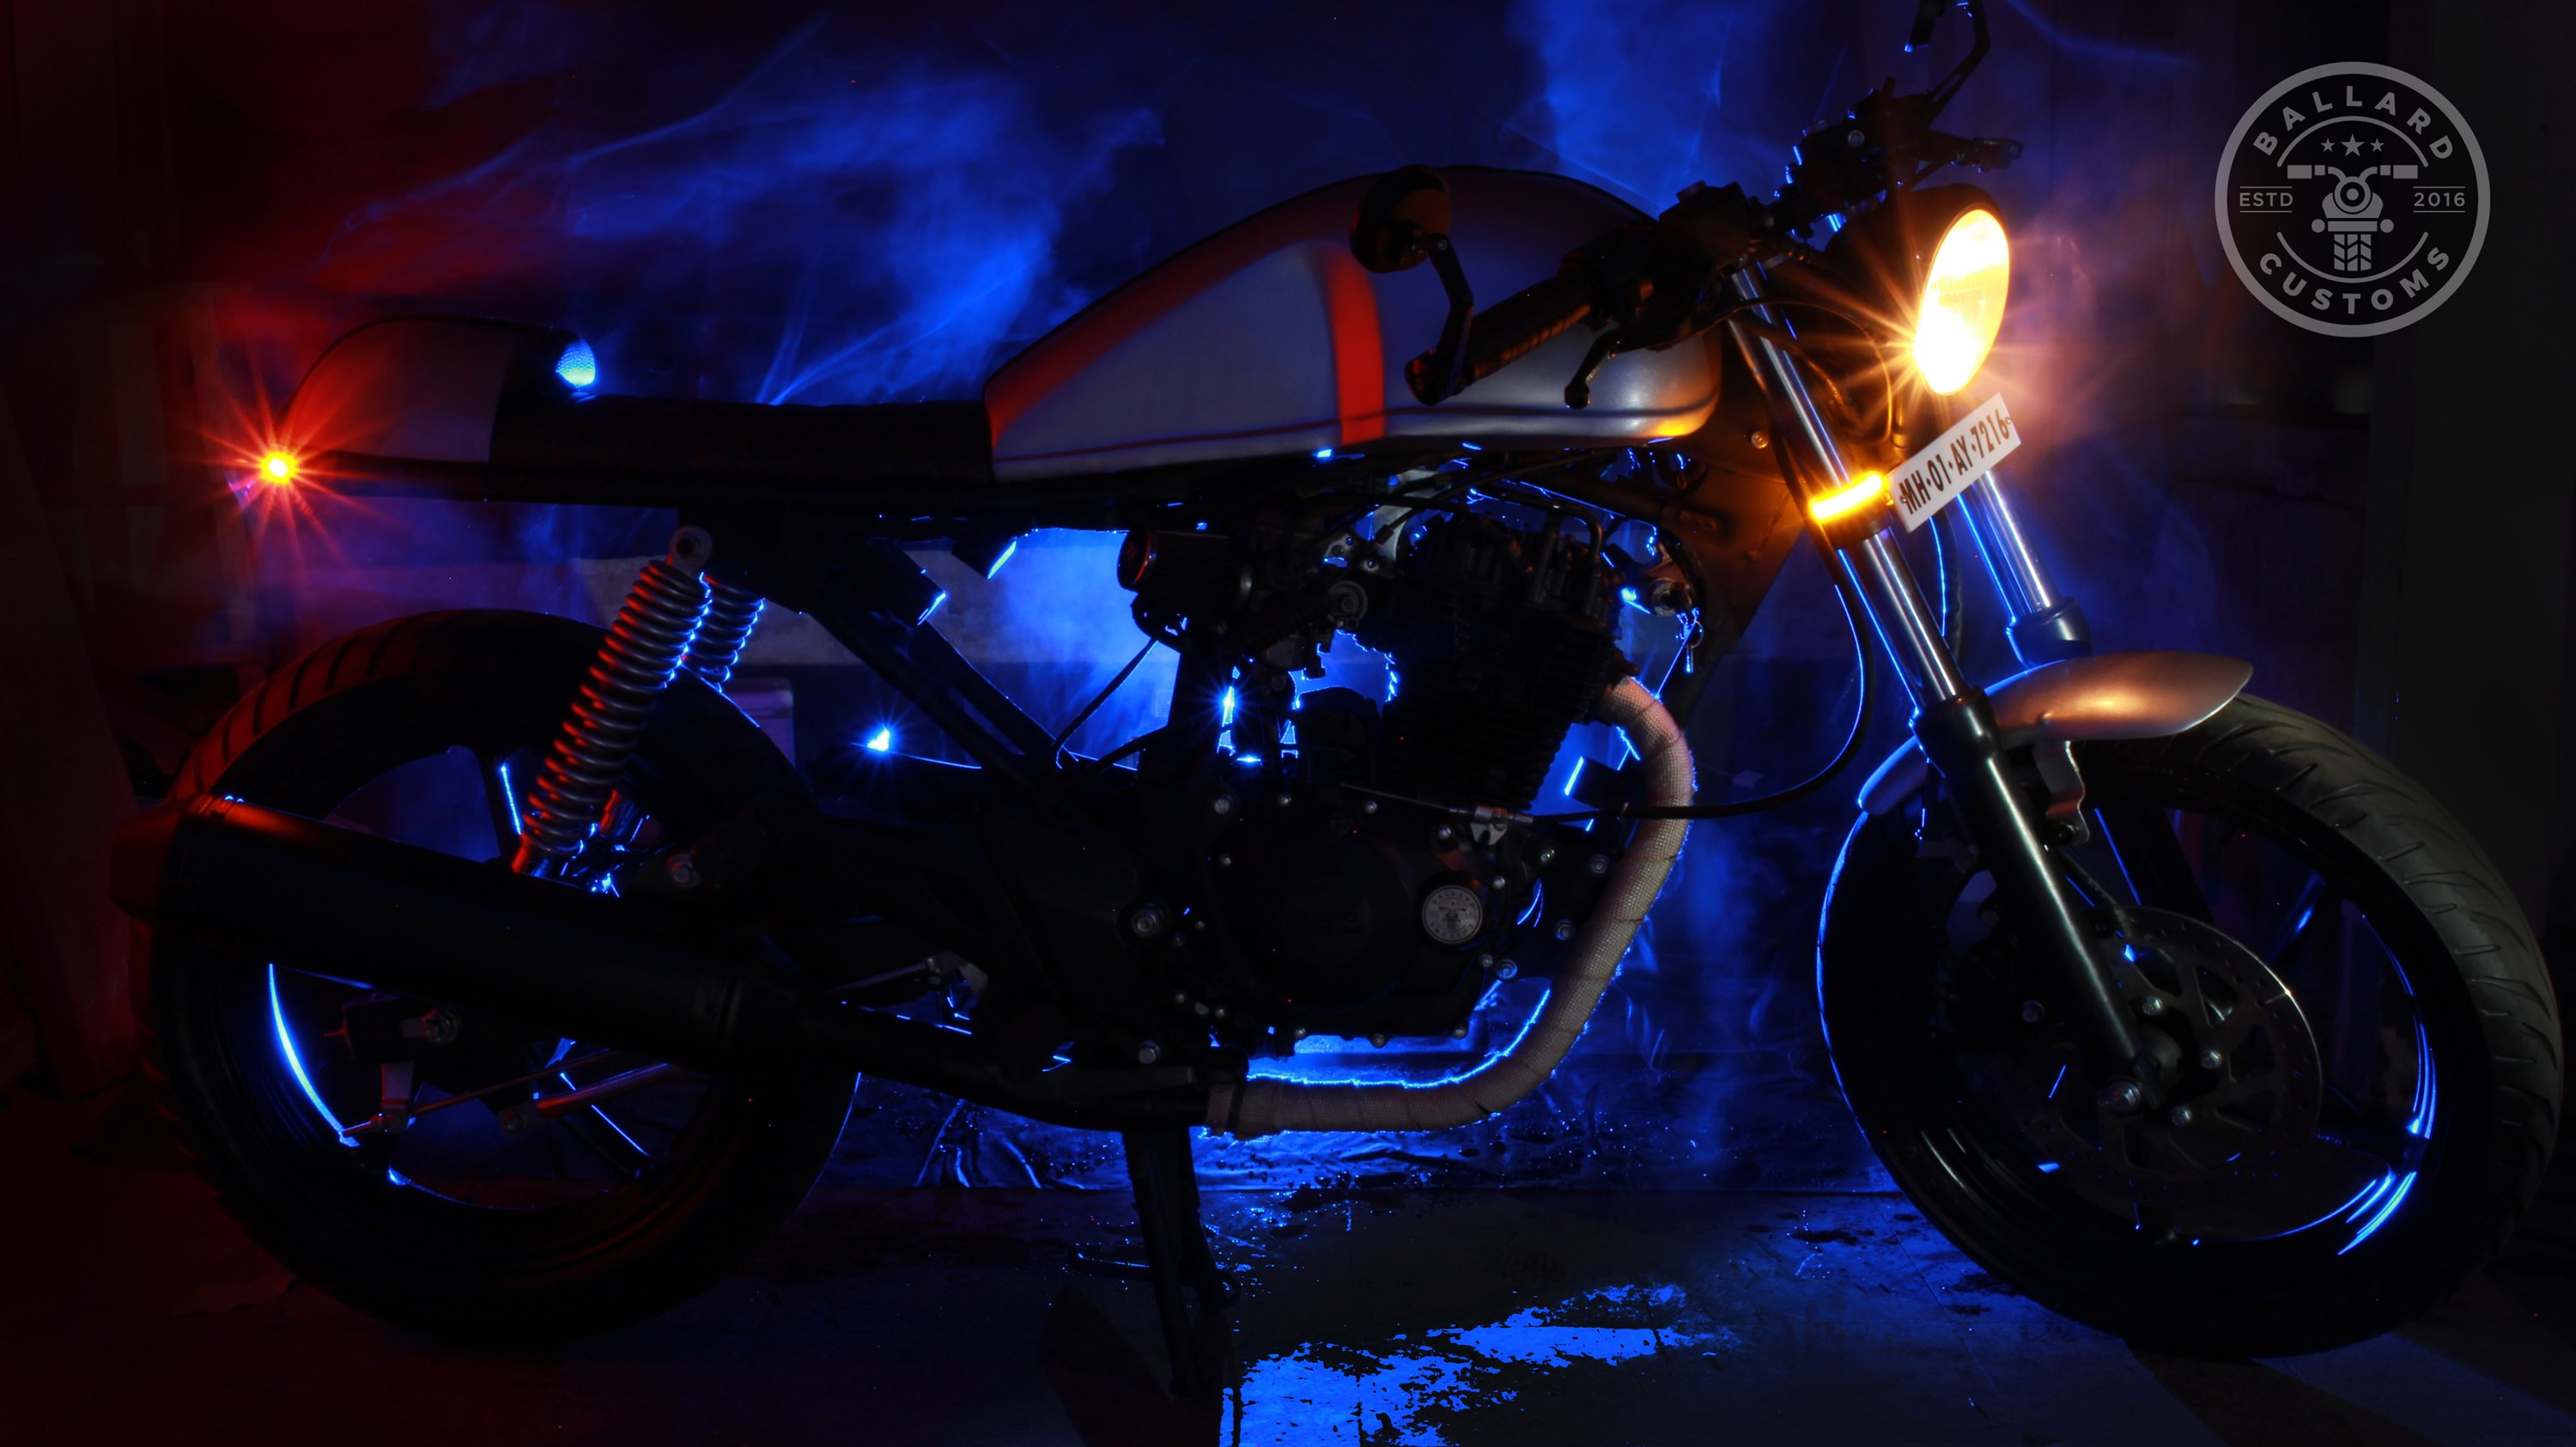 Modified Honda Karizma Cafe Racer by Ballard Customs